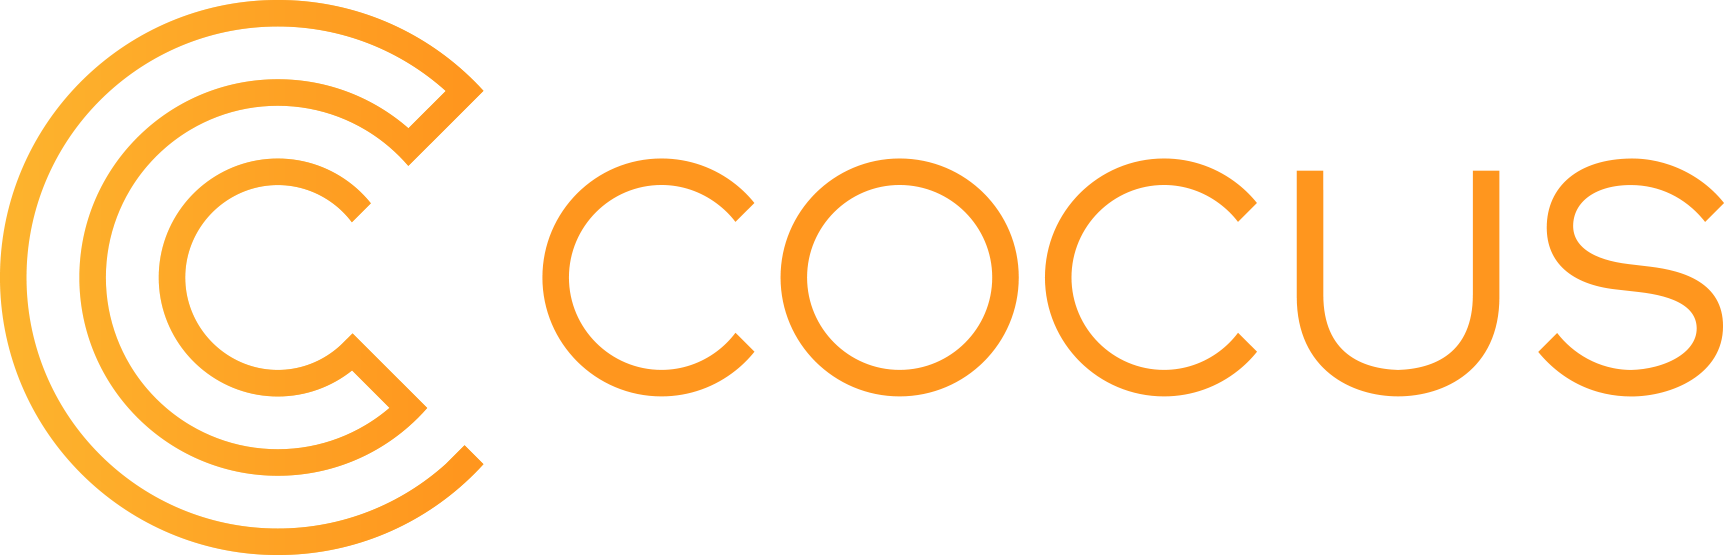 Java Backend Developer (m/w/d) - Job Düsseldorf, Homeoffice - Jobs bei uns | COCUS AG - Application form